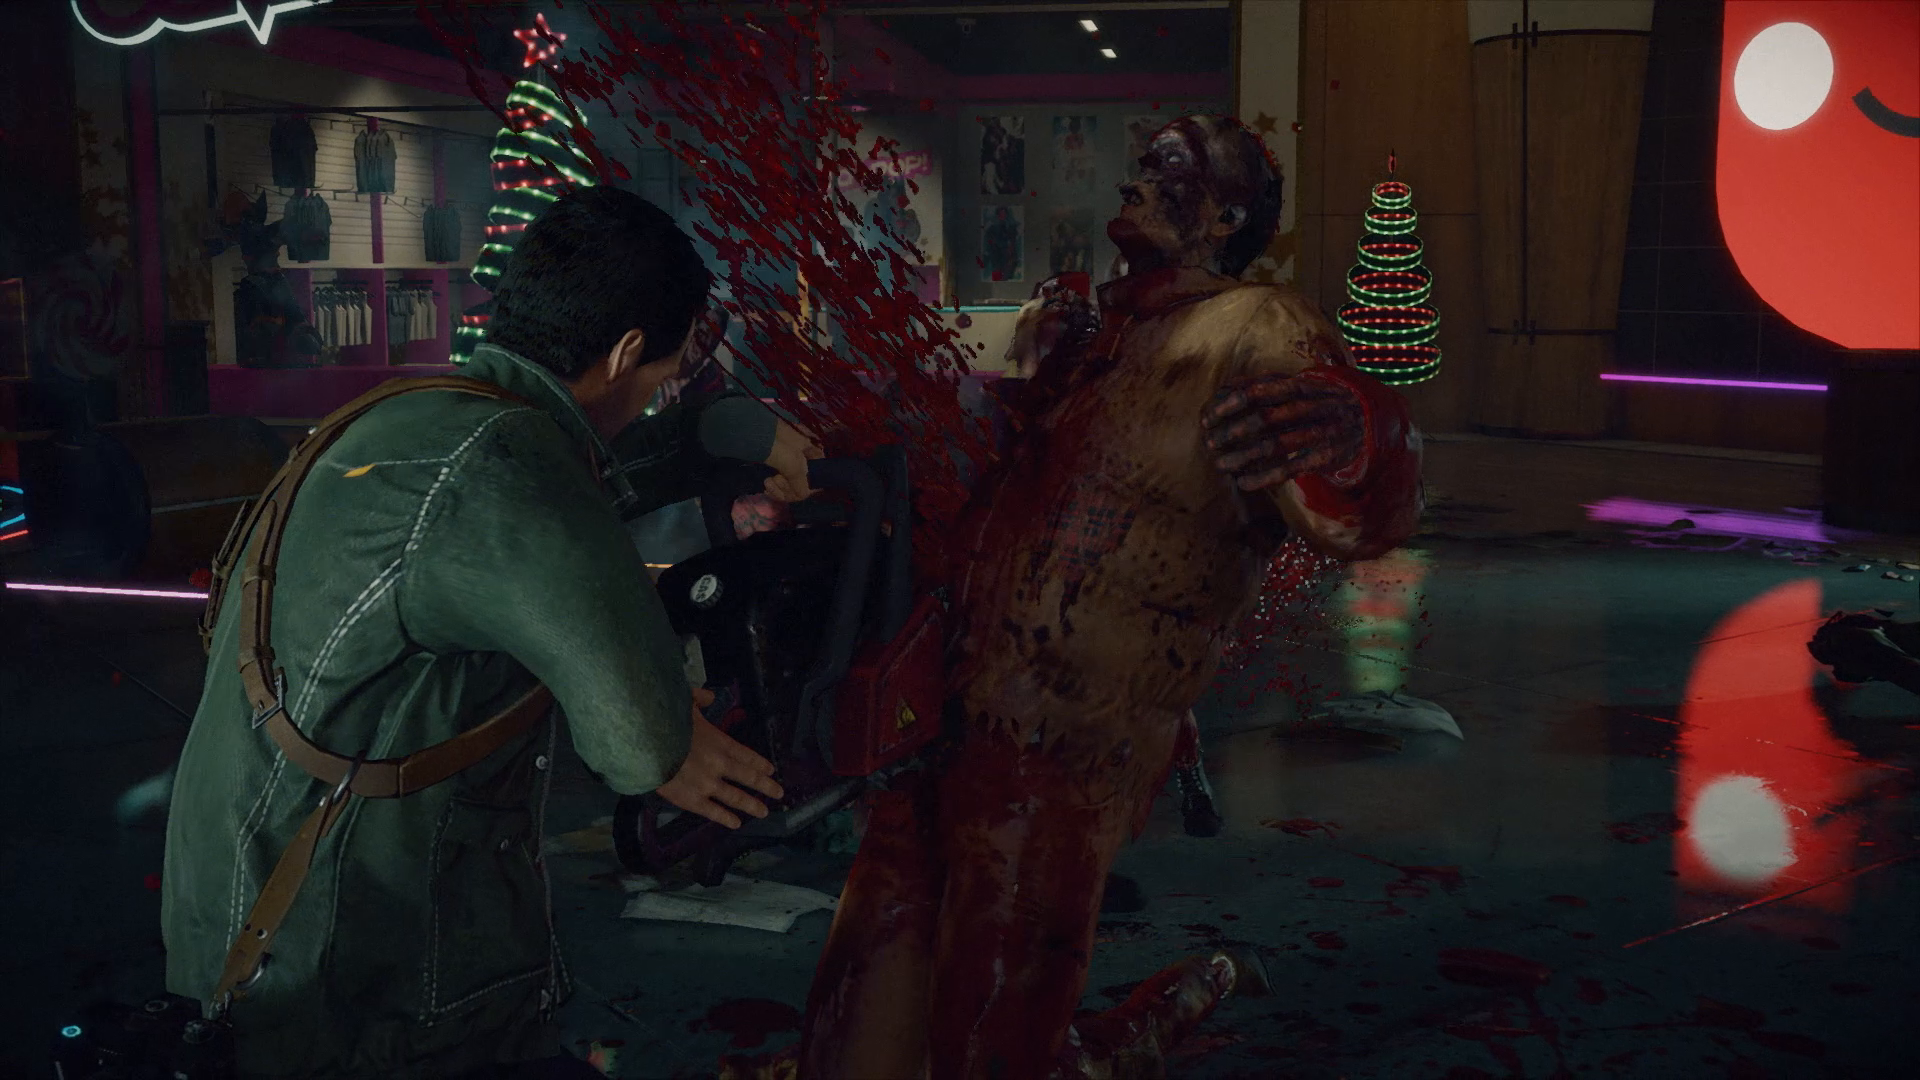 thumbnail for dead rising 4 - The Night Before Christmas Trailer